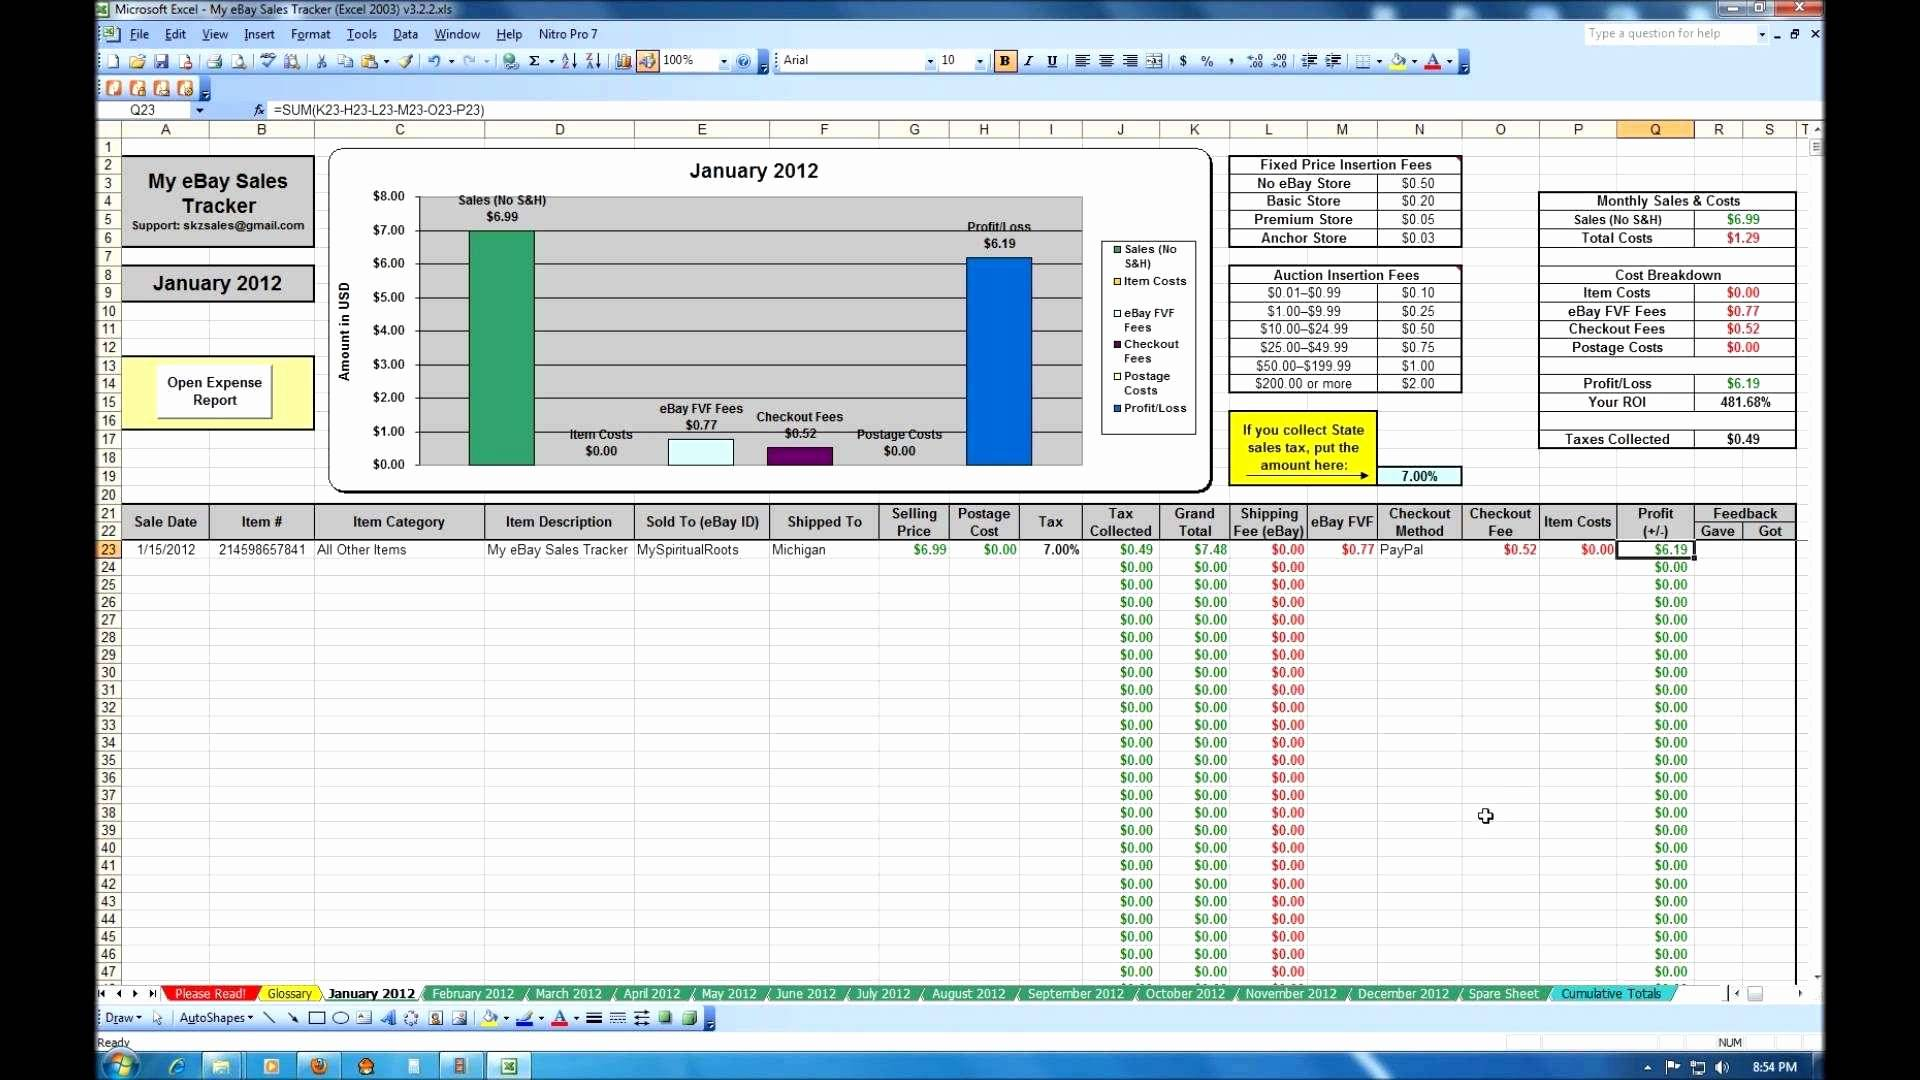 Inventory Management Template Access 2007 - Southbay Robot With Inventory Management Template Access 2007